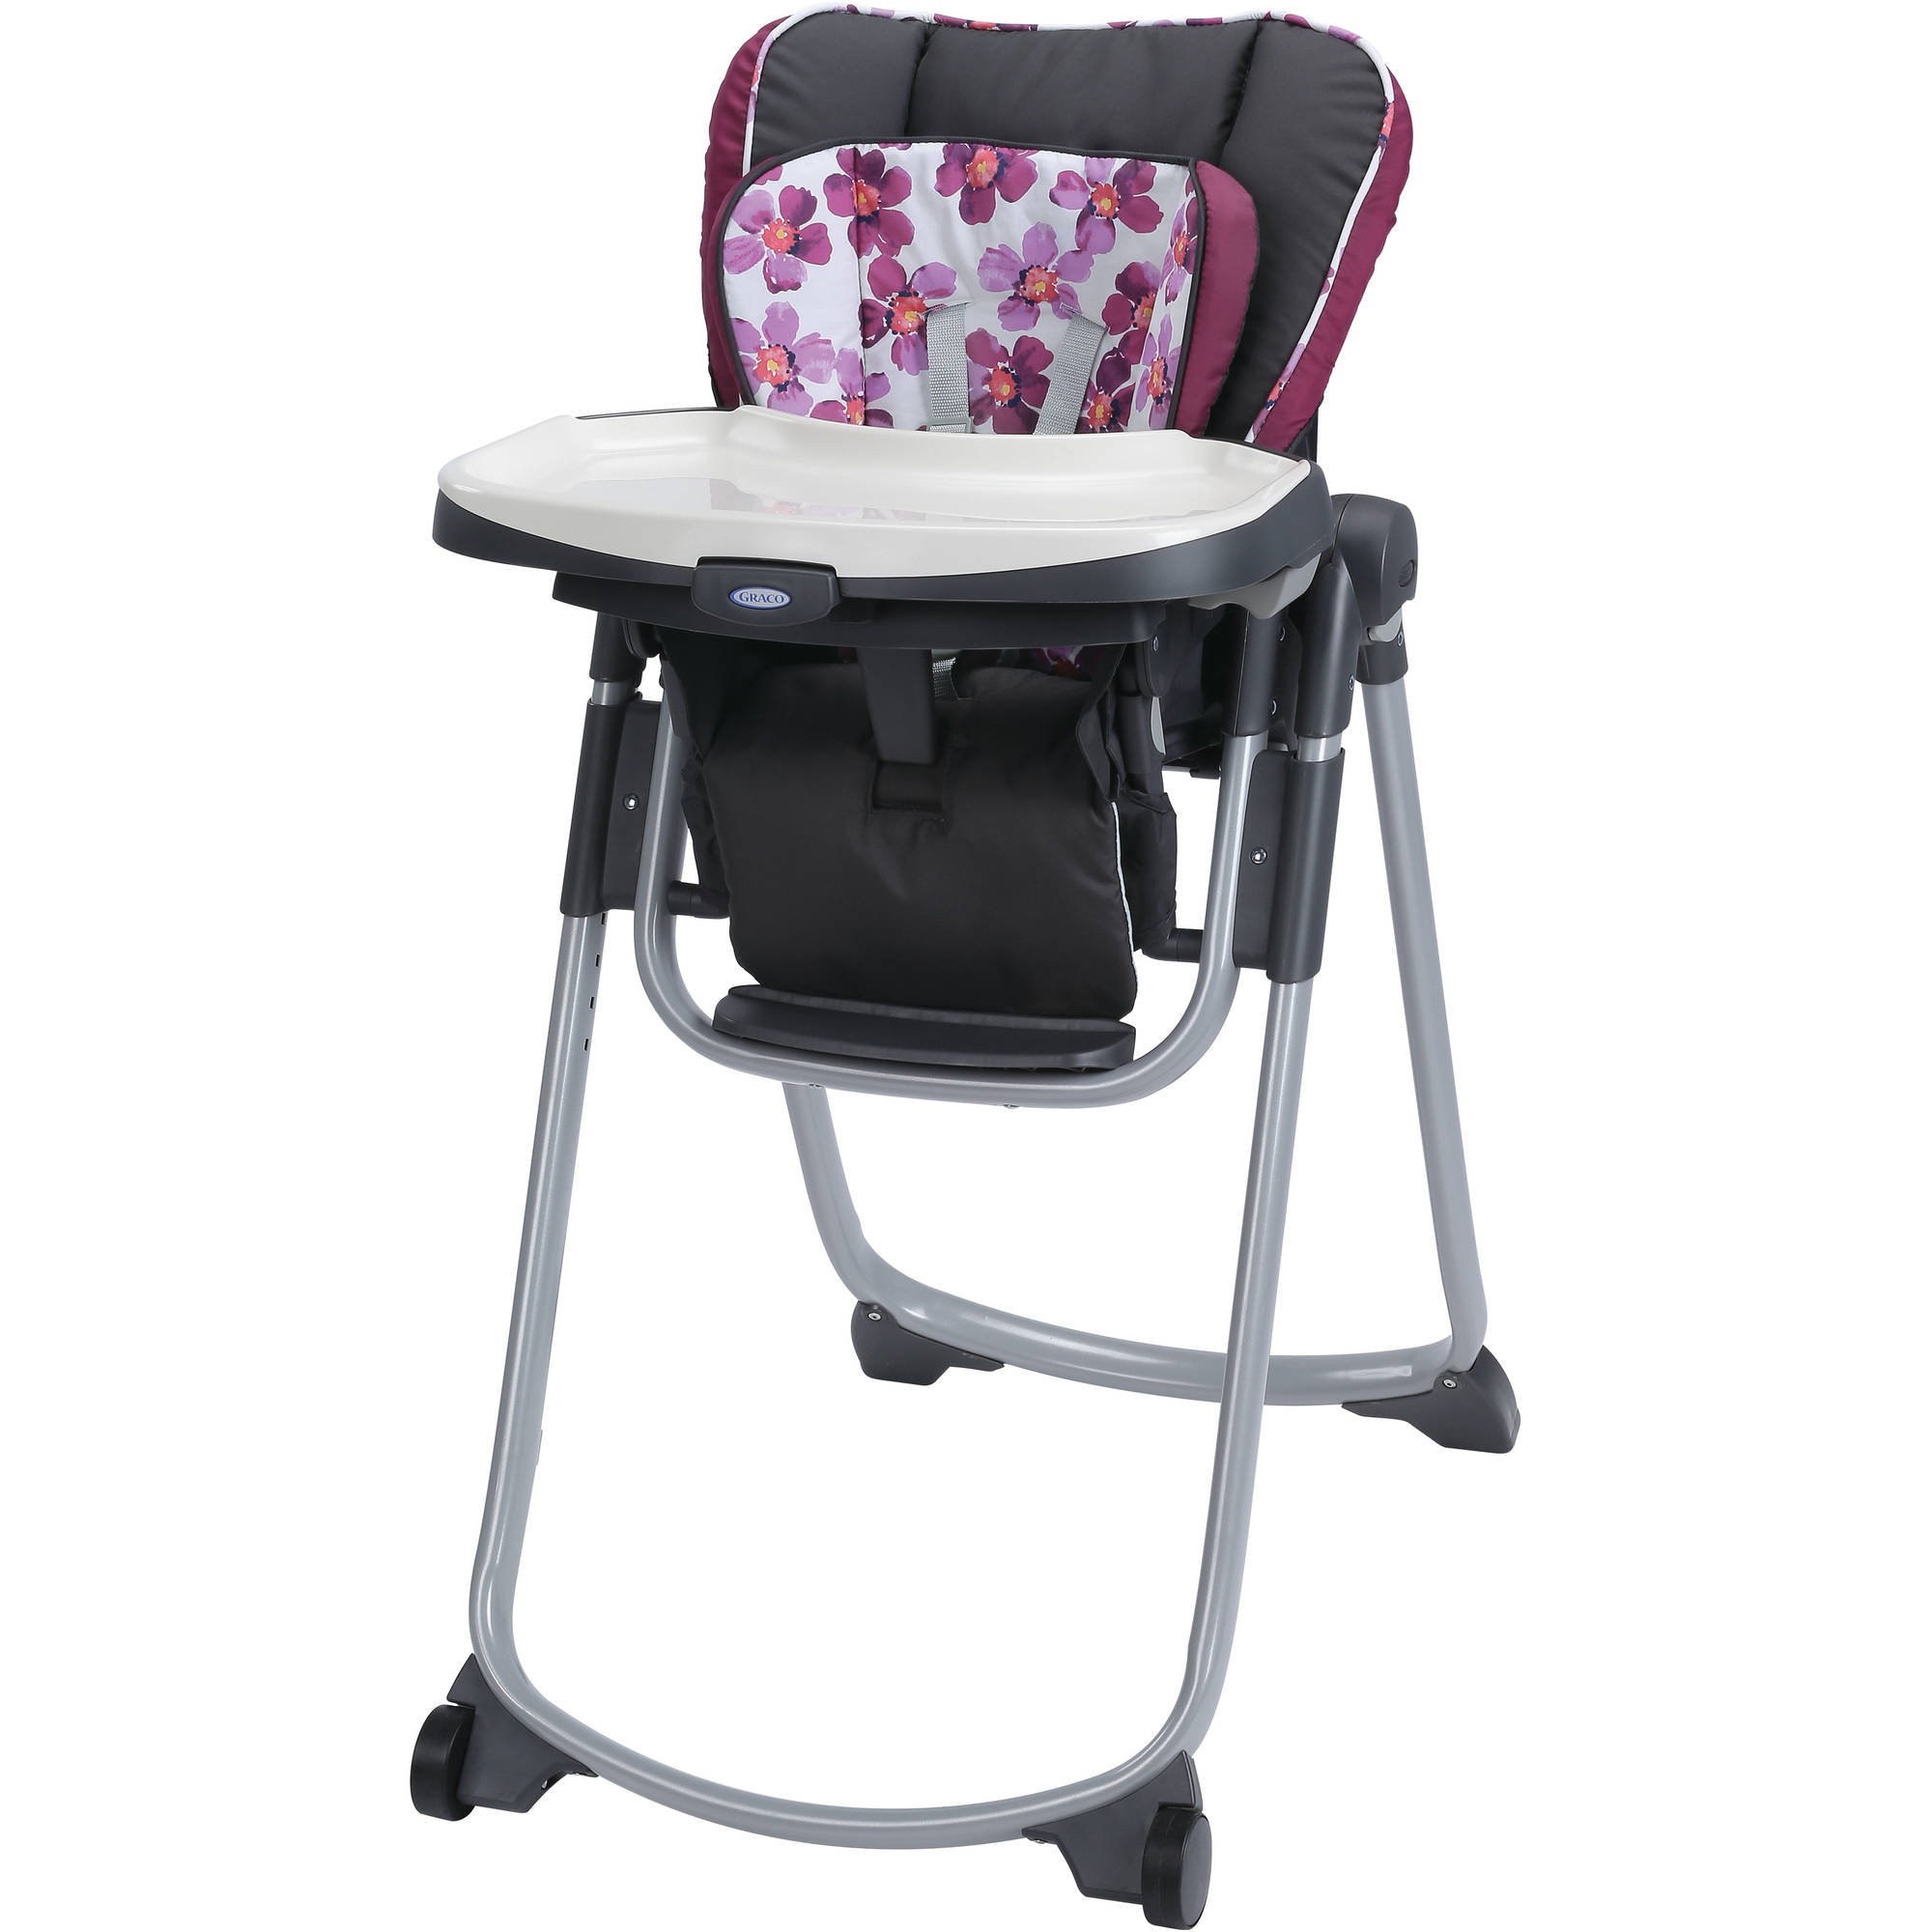 Graco Slim Spaces High Chair, Caris